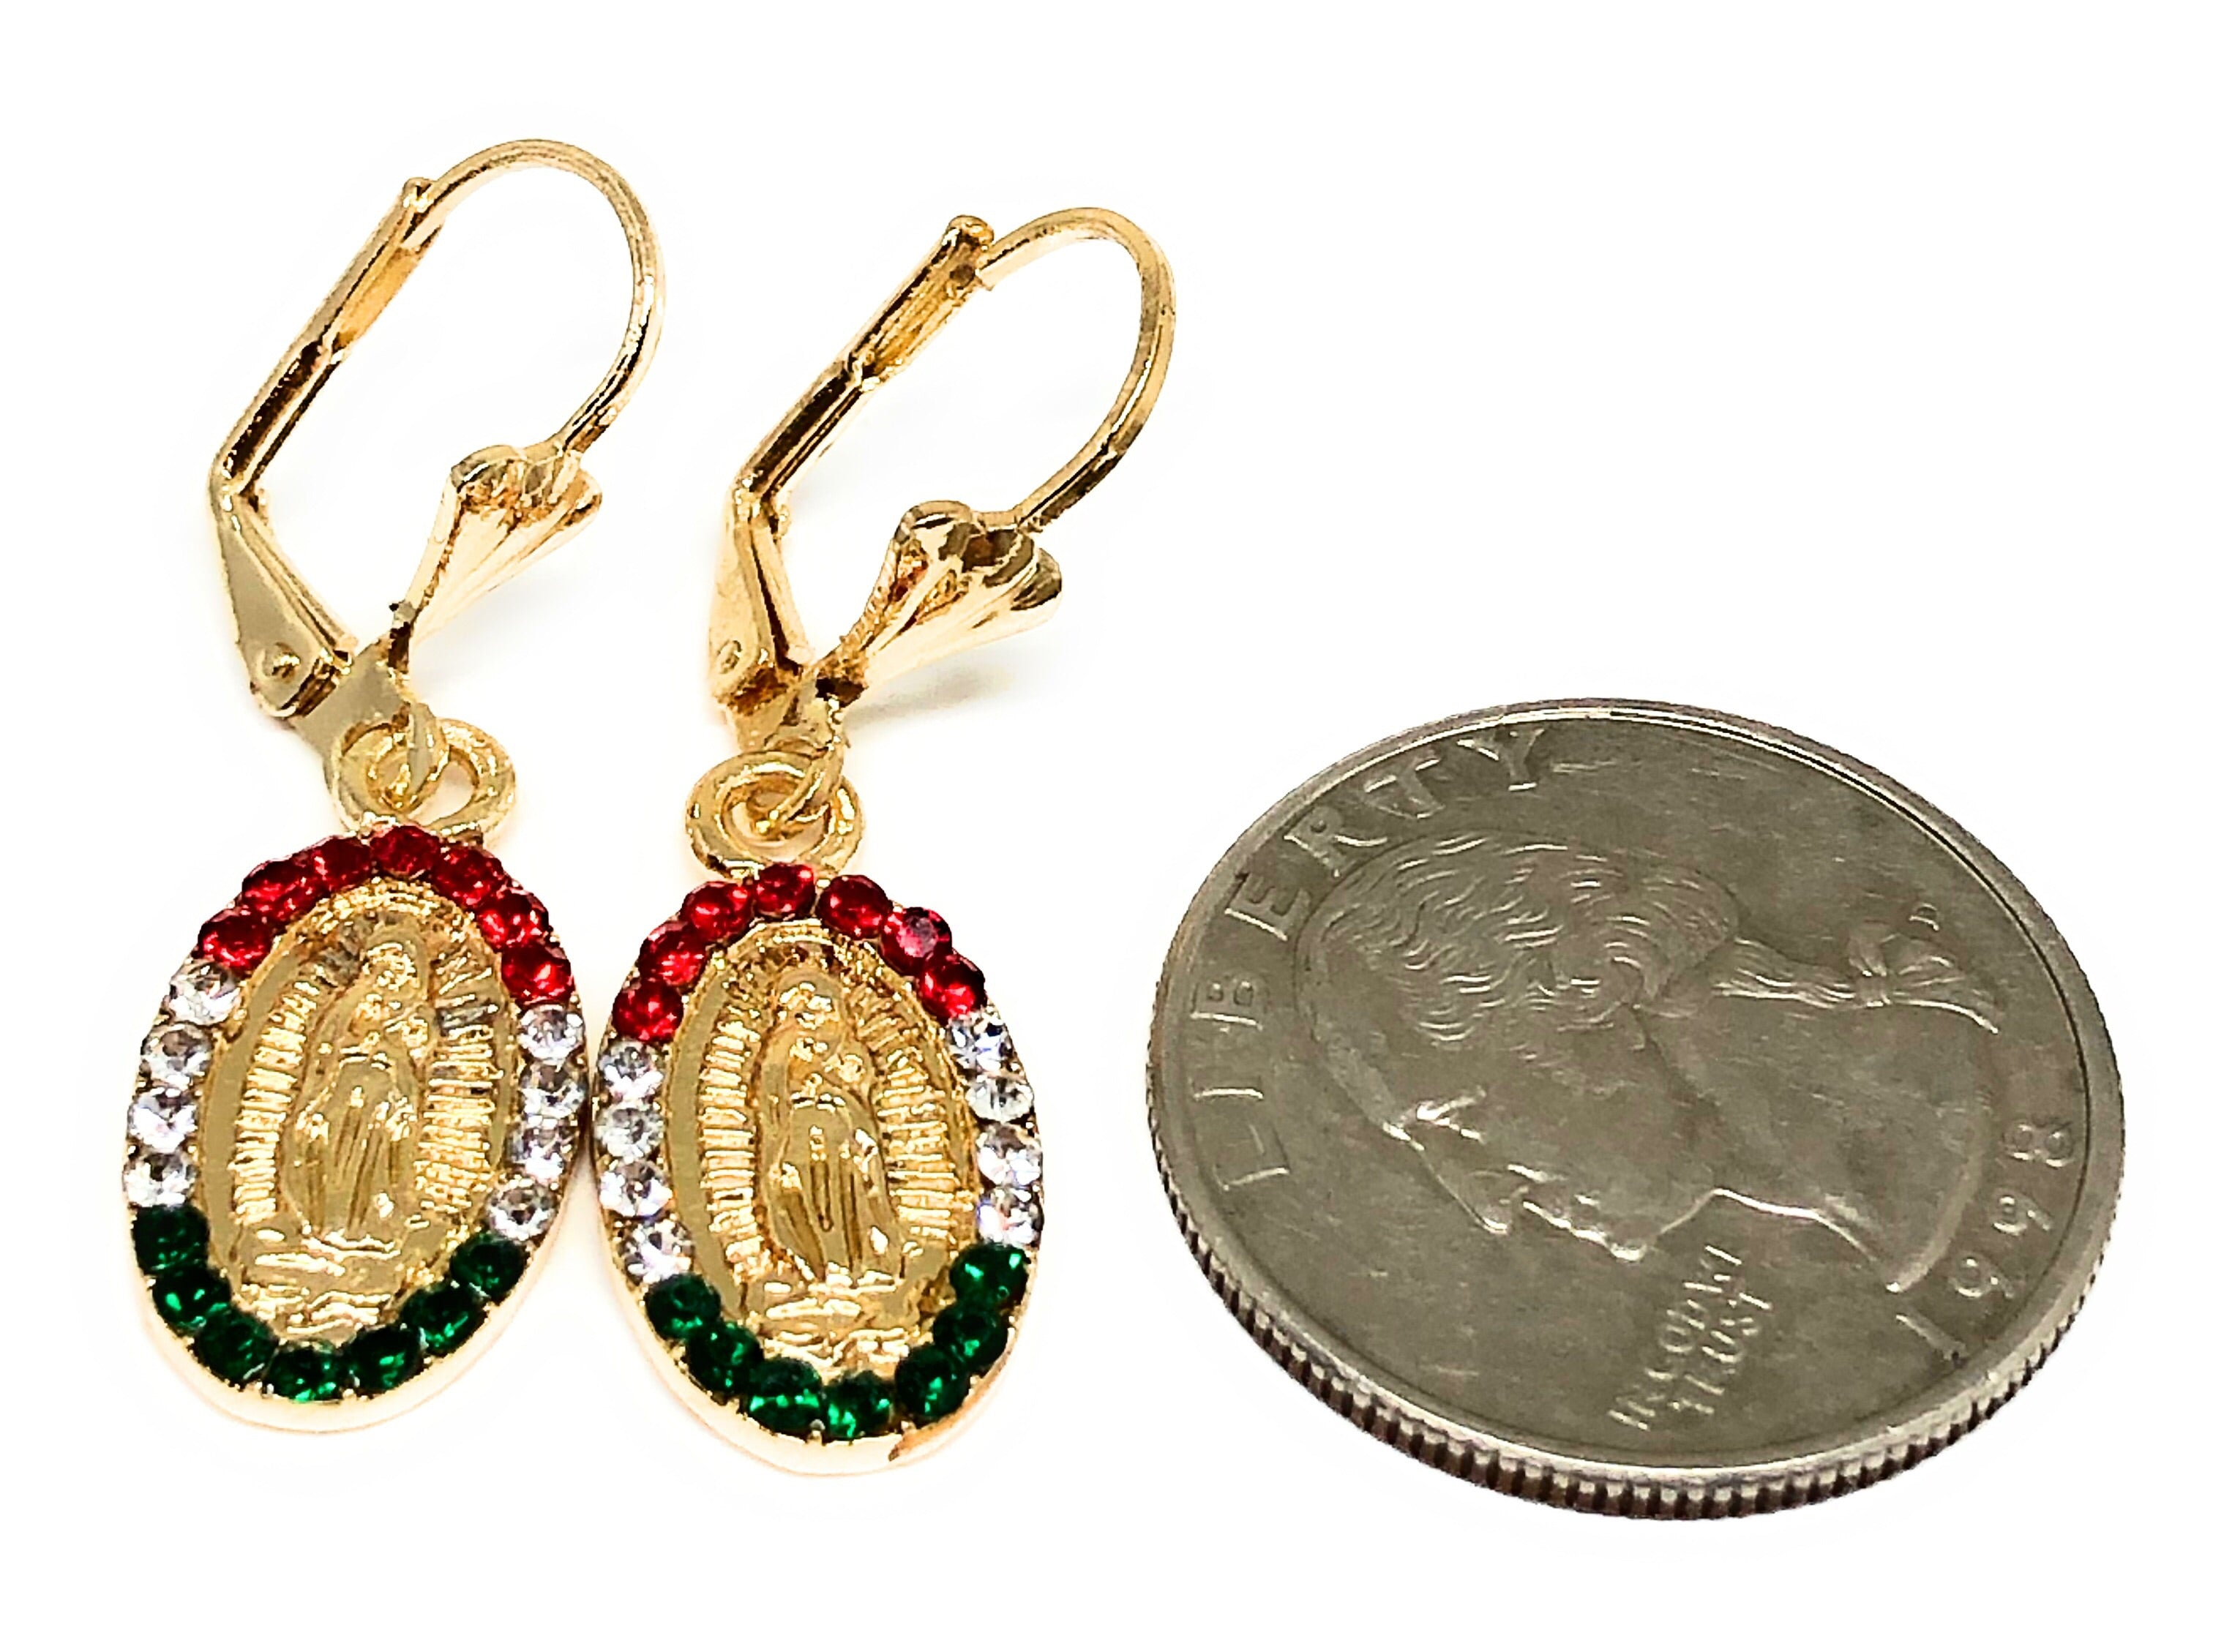 Gold Plated Virgin Mary Earrings w/ Stones Aretes Virgen Guadalupe